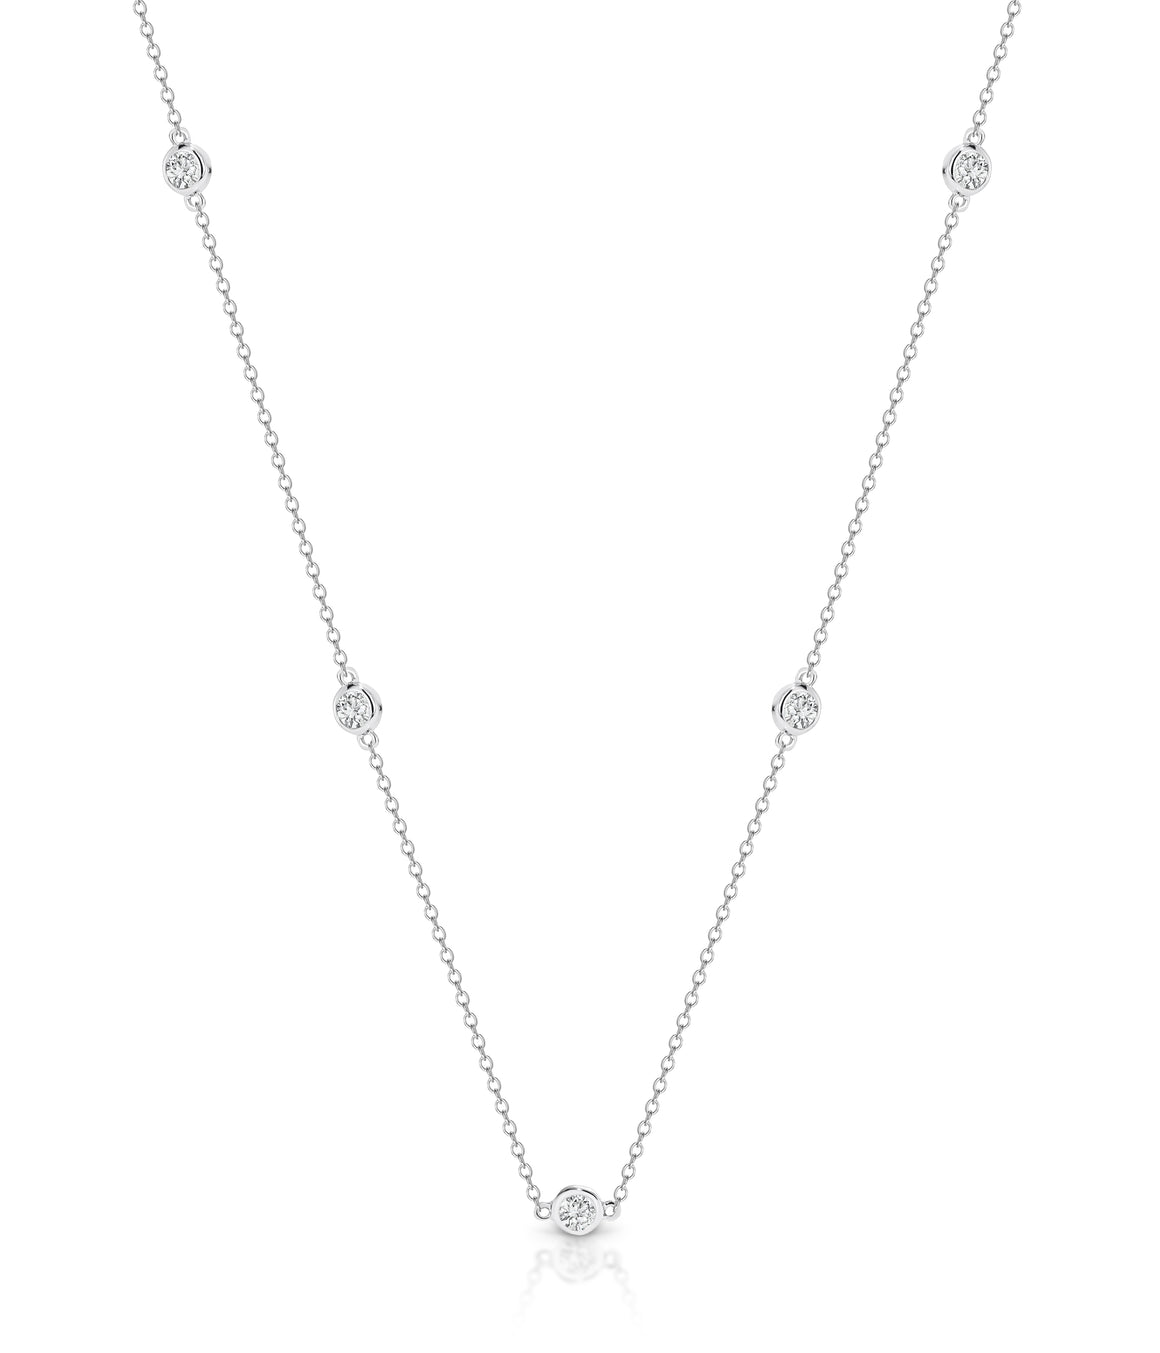 Diamond 'Marchesa' Necklace - Gemma Stone  ABN:51 621 127 866